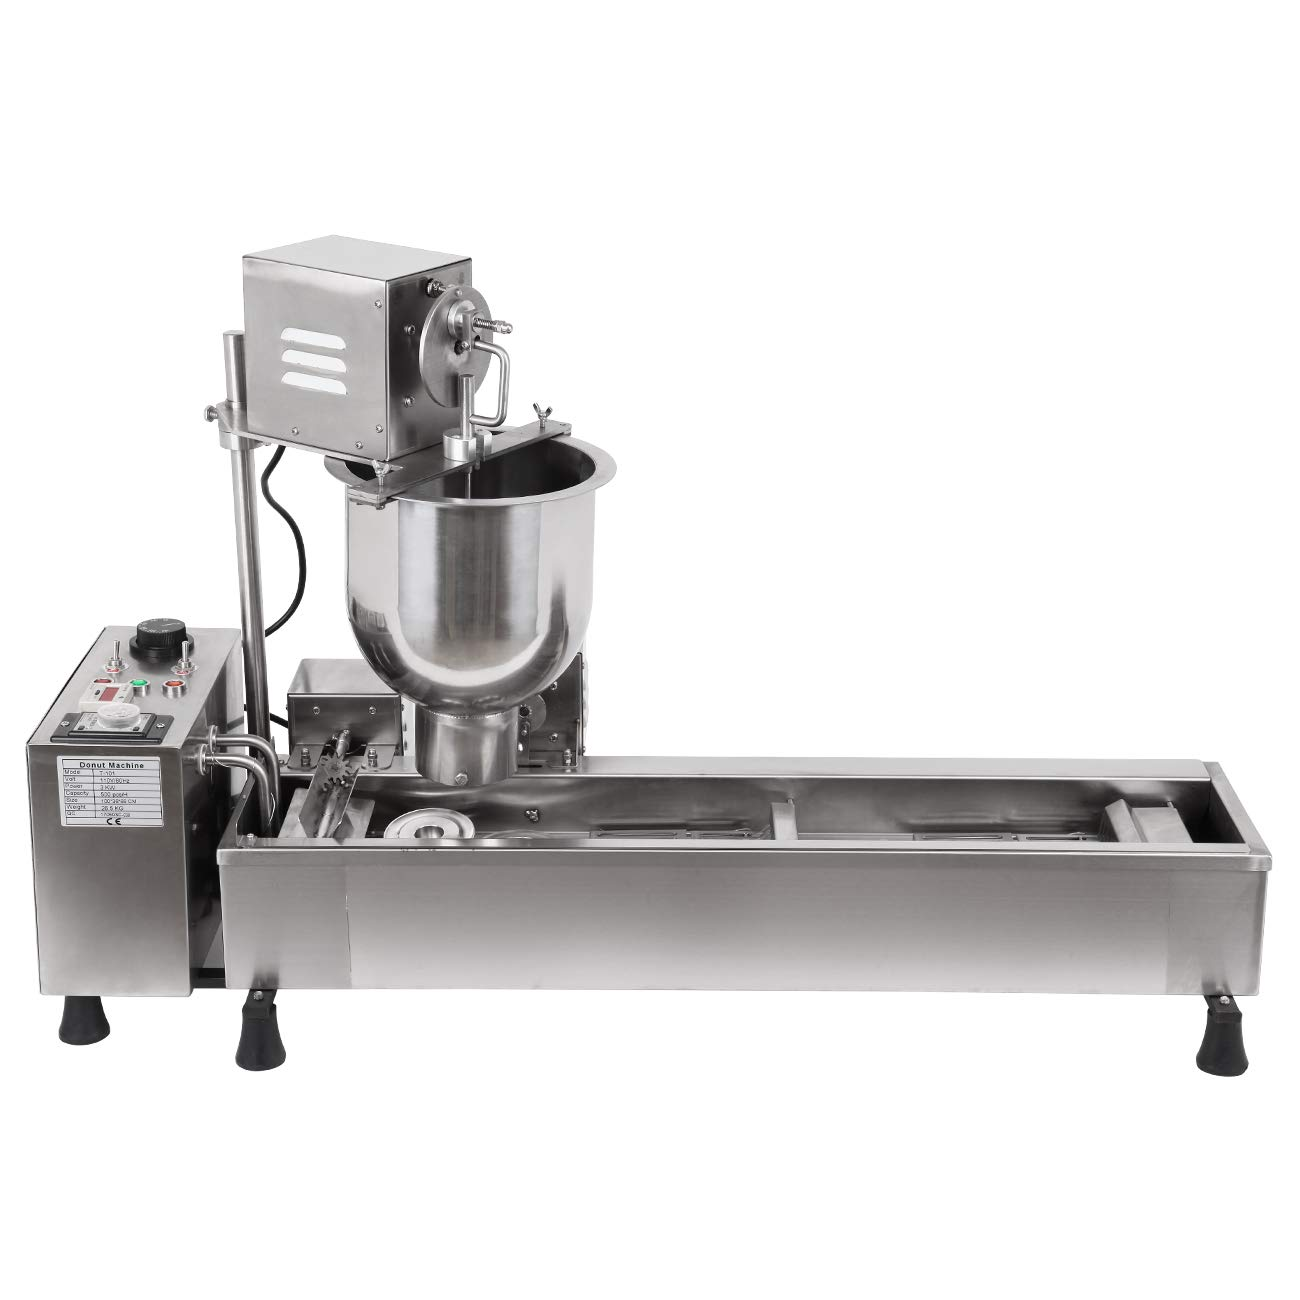 Ridgeyard Commercial Automatic Donut Making Machine Auto Donut Maker Machine with 3 Sizes Molds and 7L Bucket 110V 3000W, Ship From US by Ridgeyard (Image #4)